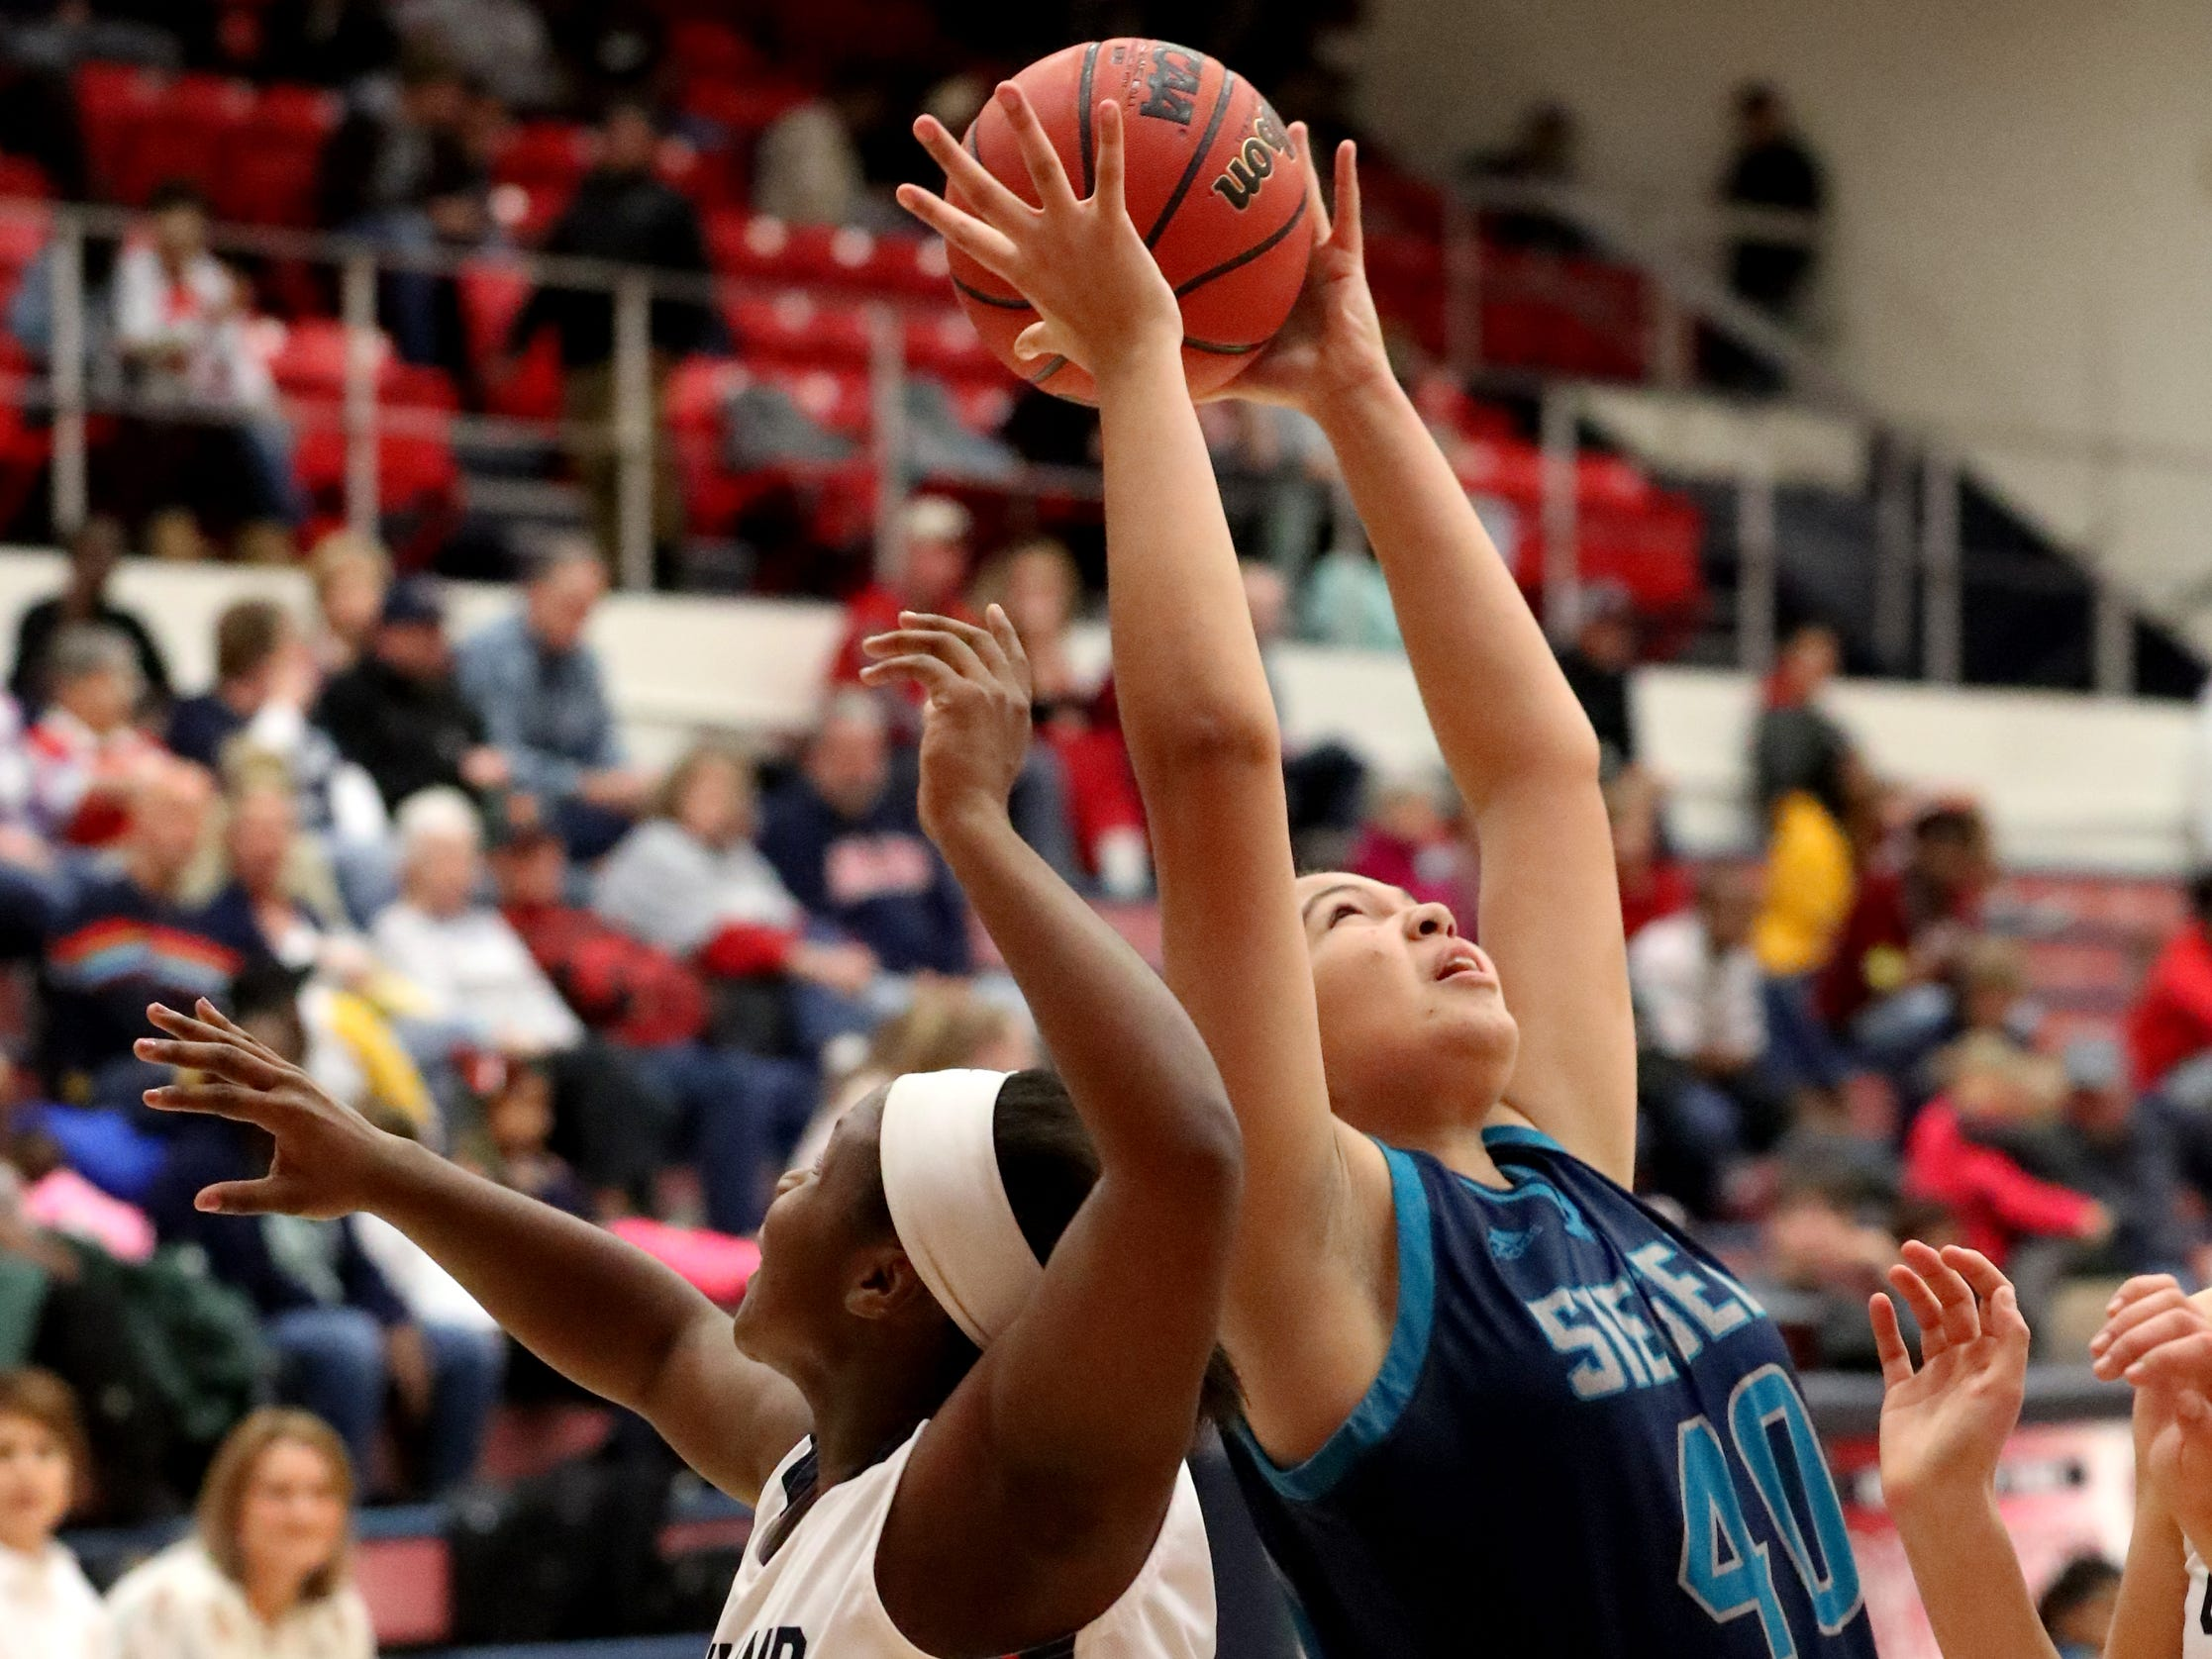 Siegel's Genesis Sneed (40) grabs a rebound as Oakland's Erykah Collier (32) also goes for the ball during the game at Oakland on Tuesday, Dec.. 4, 2018.